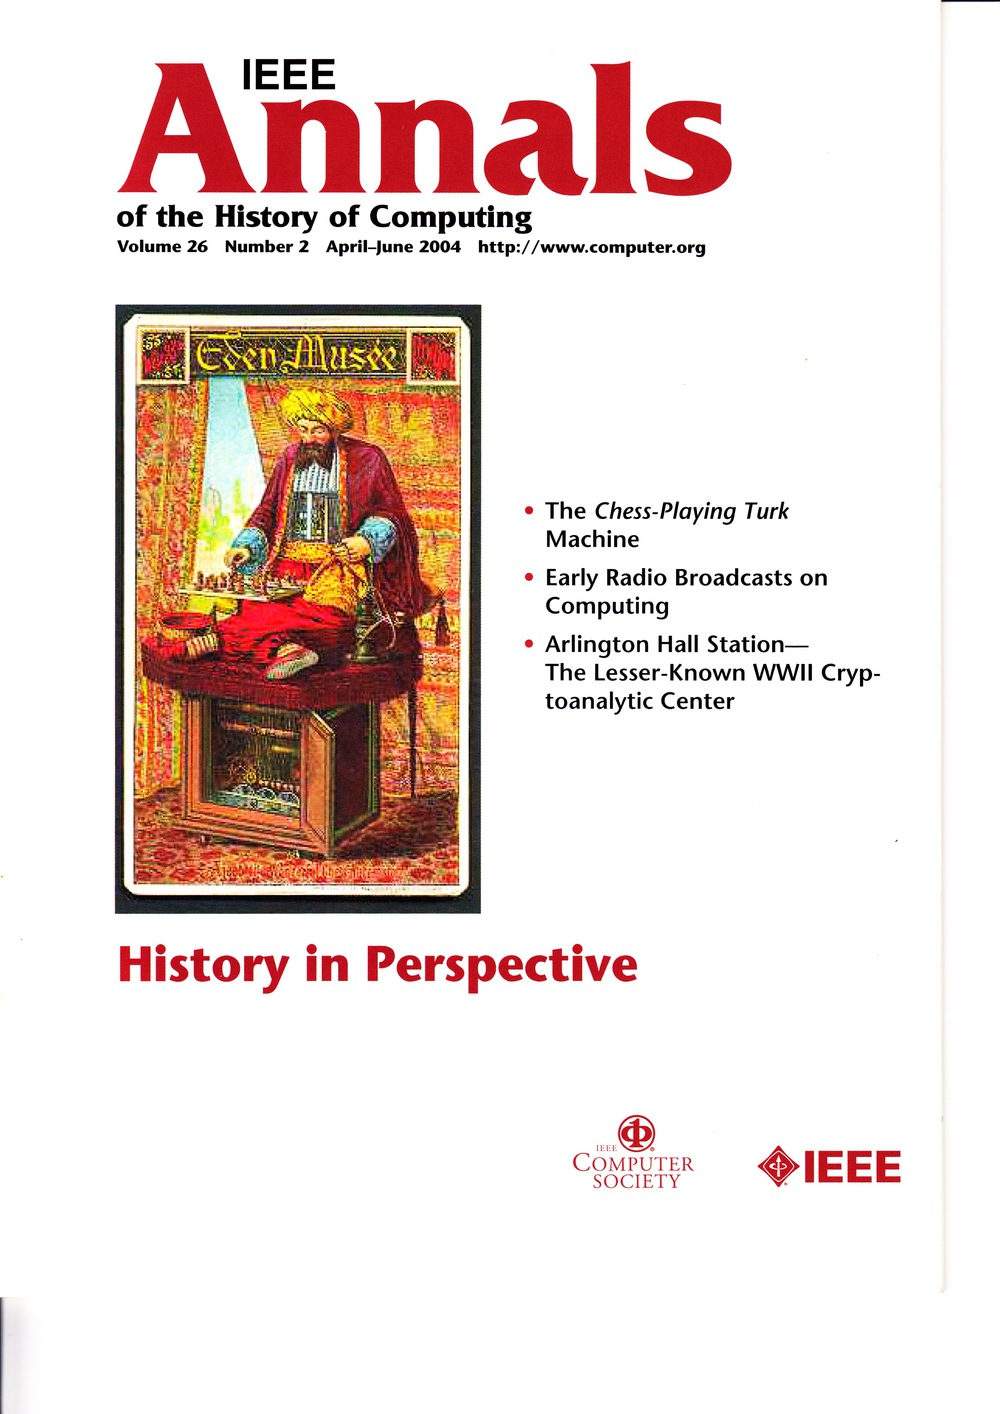 Scan of Document: IEEE Annals of the History of Computing - April-June 2004